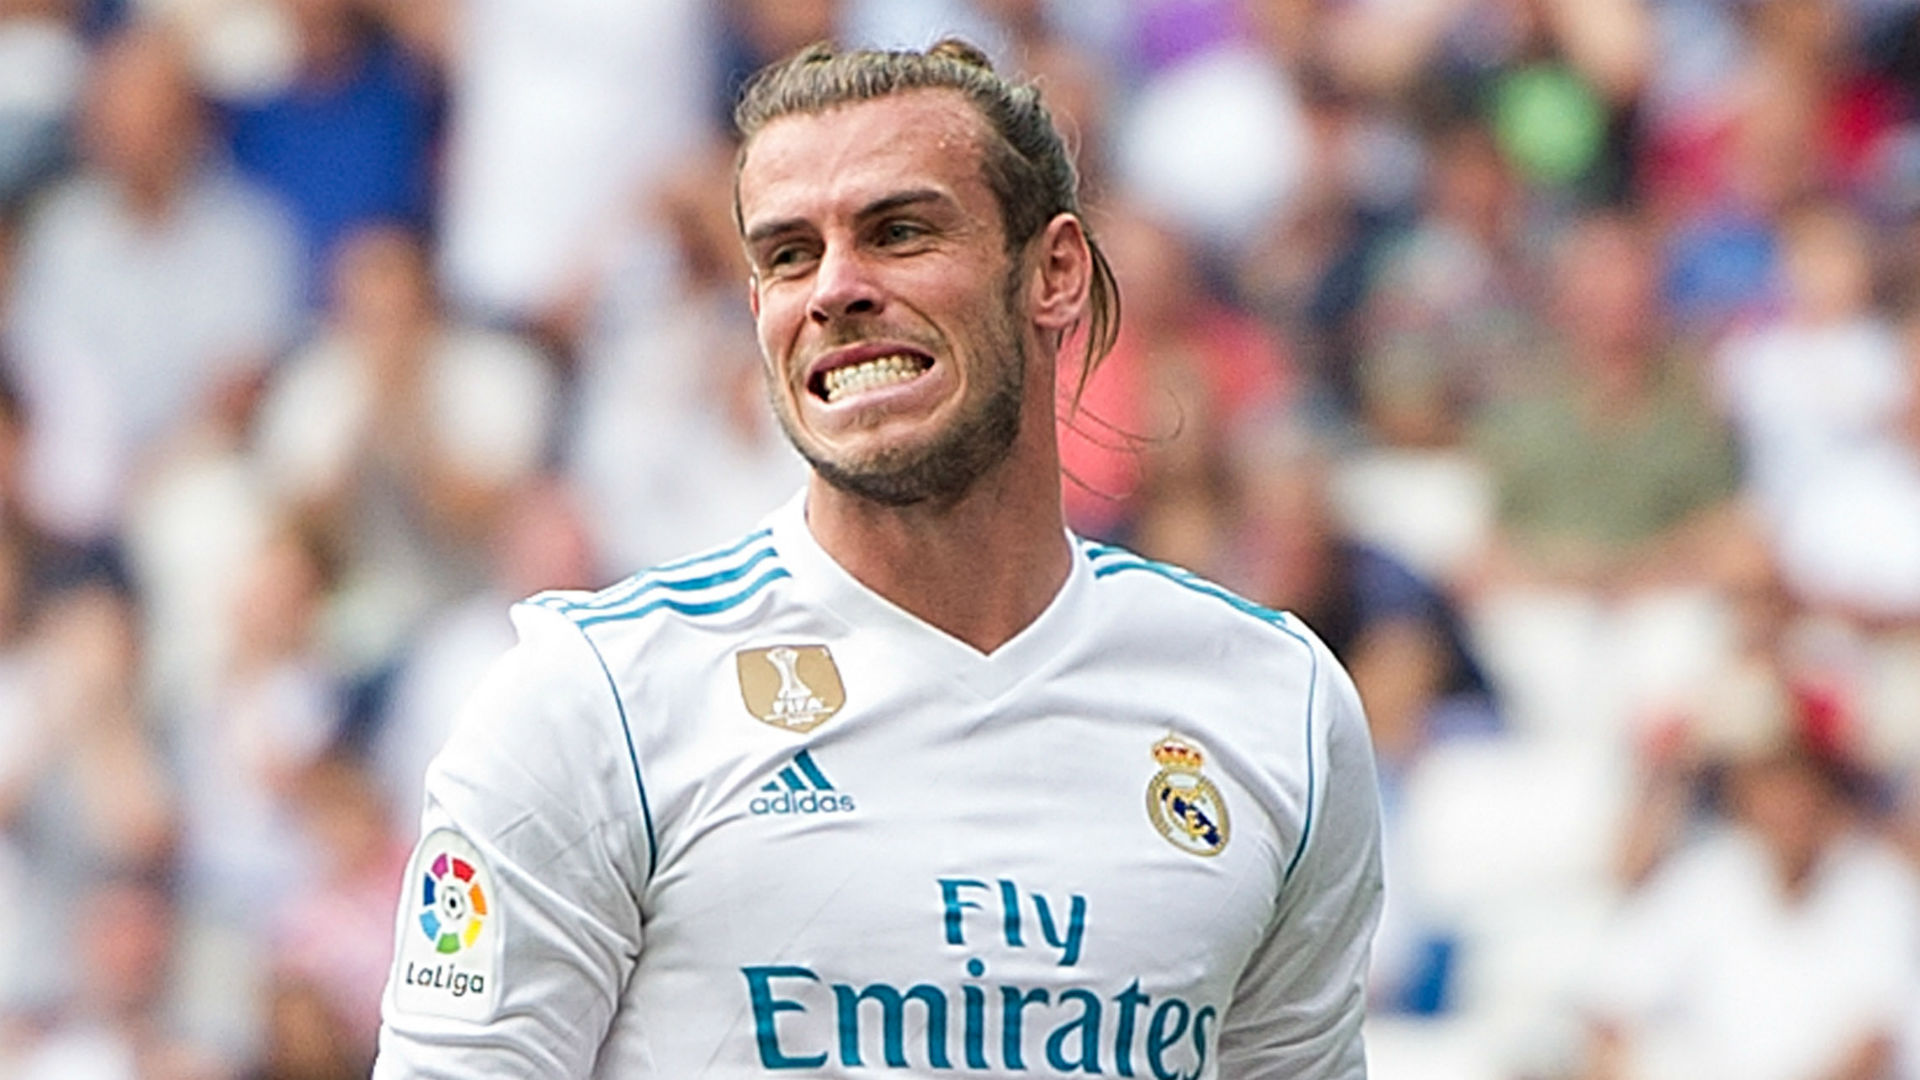 Manchester United target Gareth Bale explains why he's happy at Real Madrid